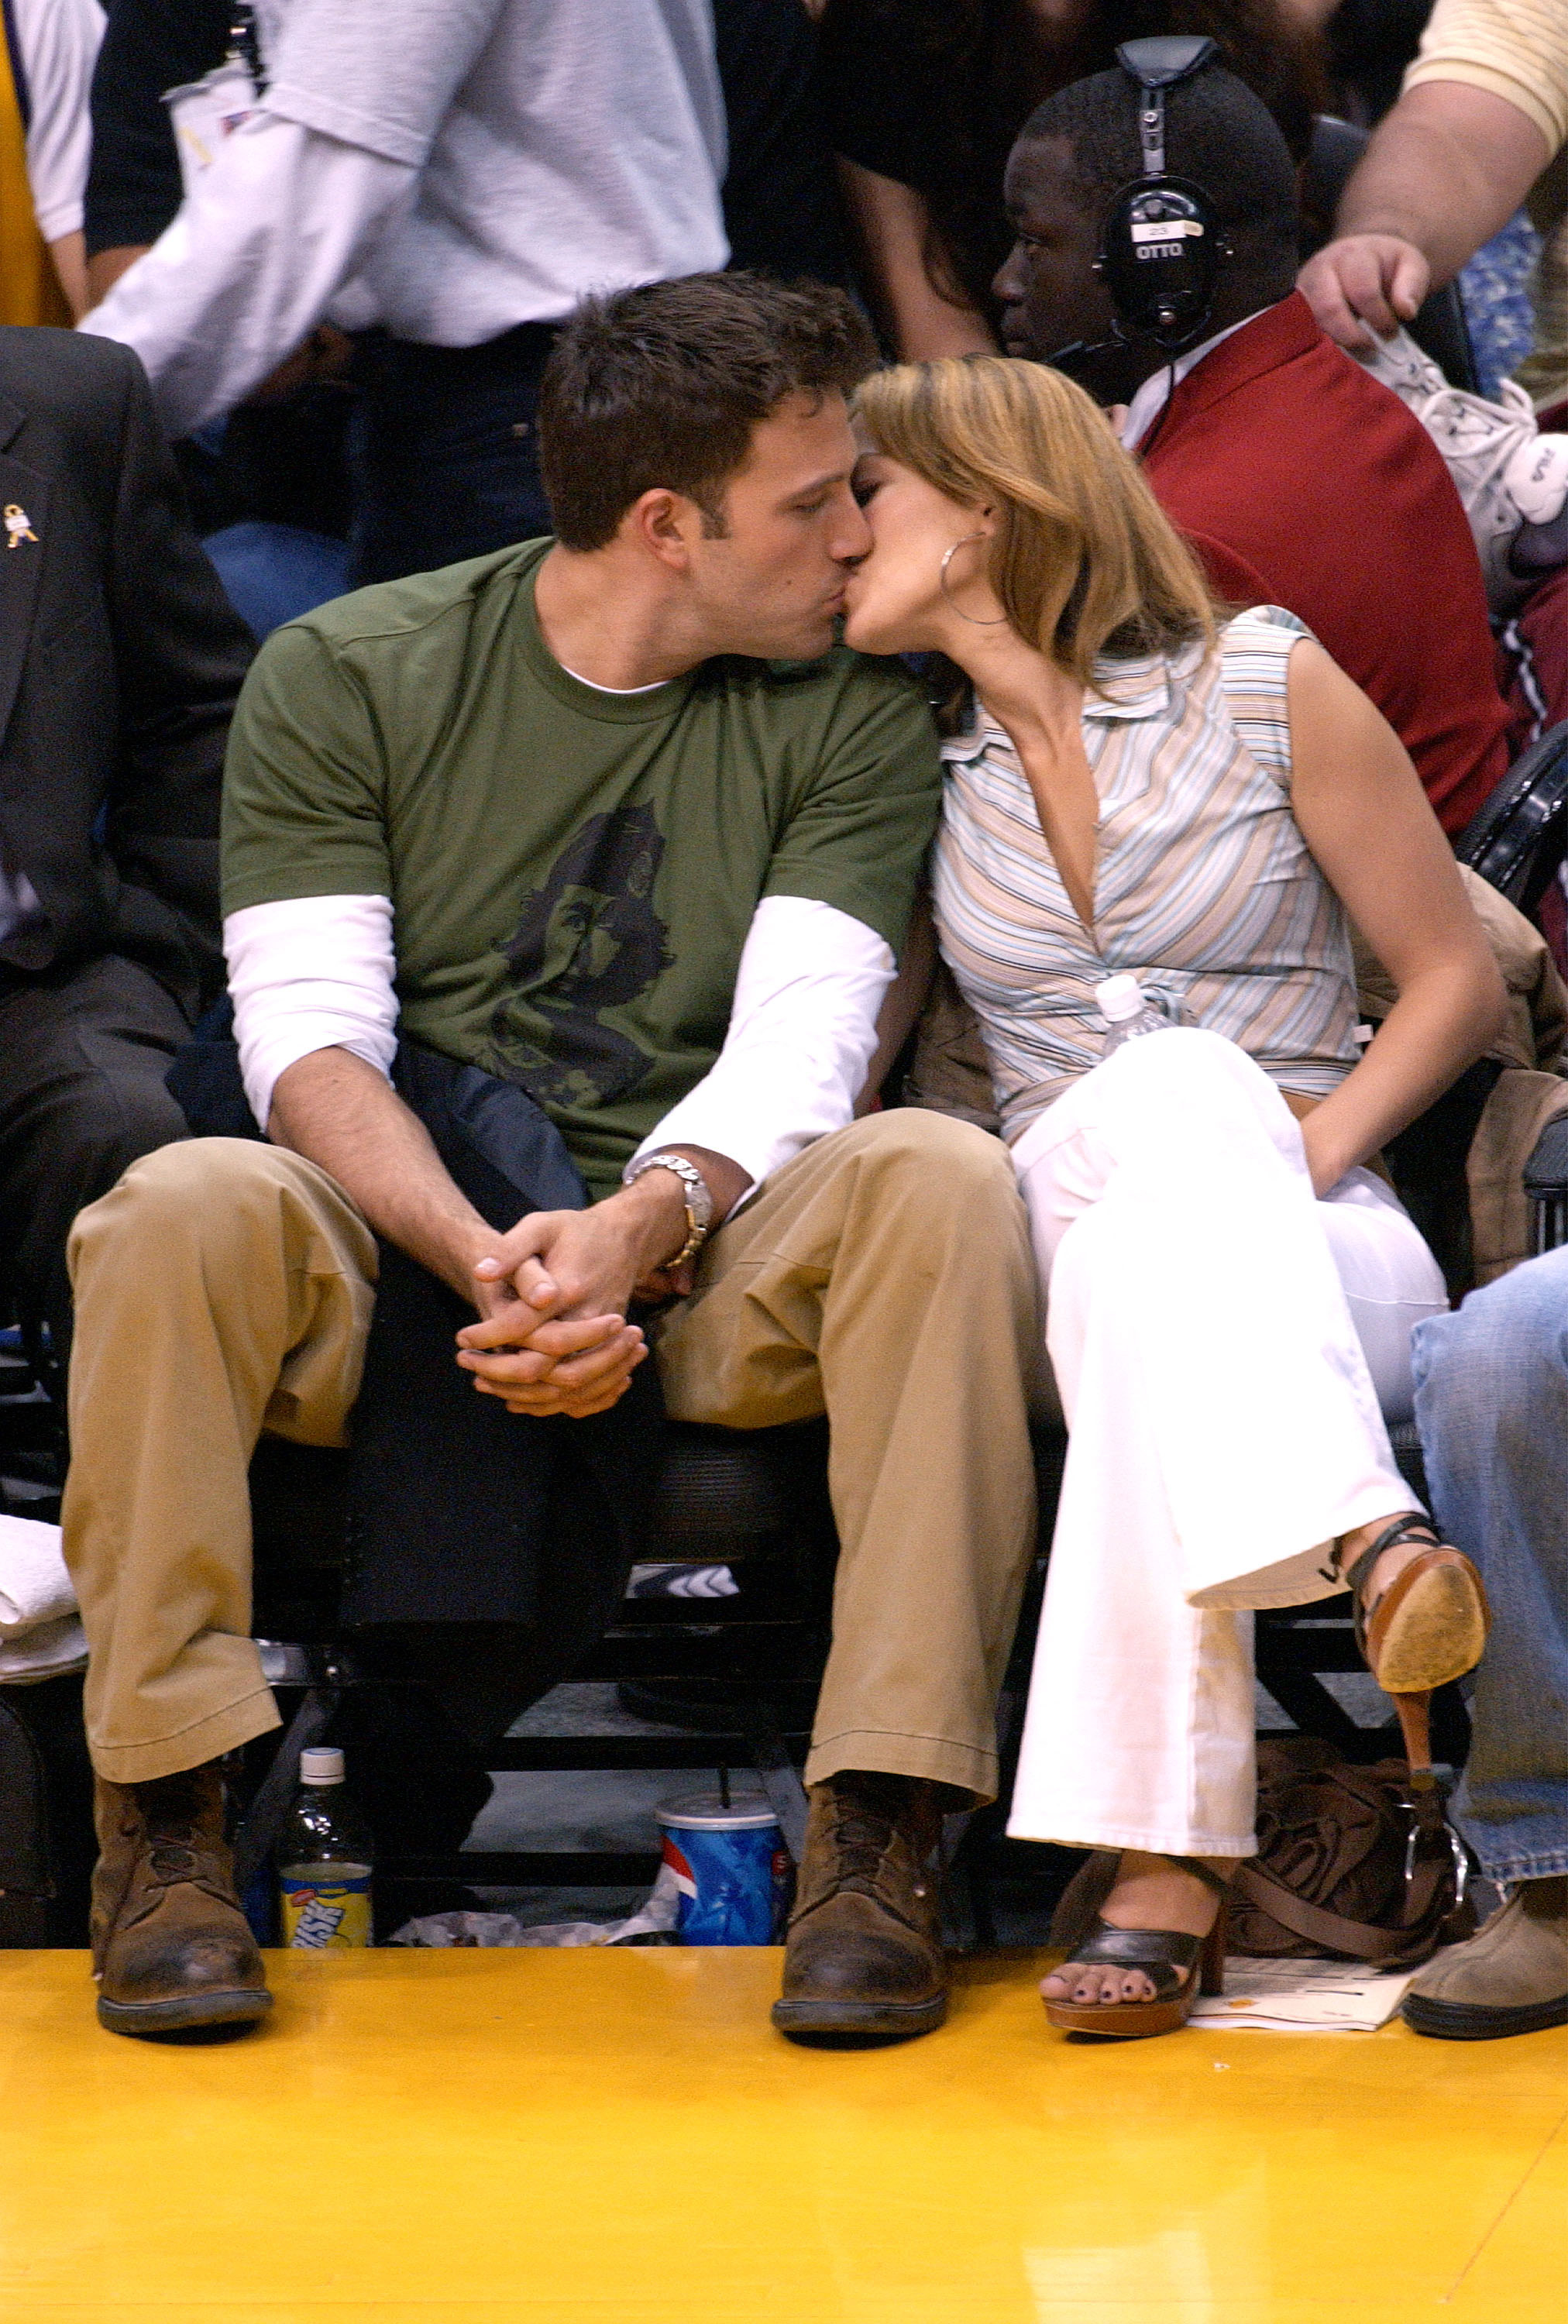 Ben Affleck and Jennifer Lopez at a basketball game in 2003